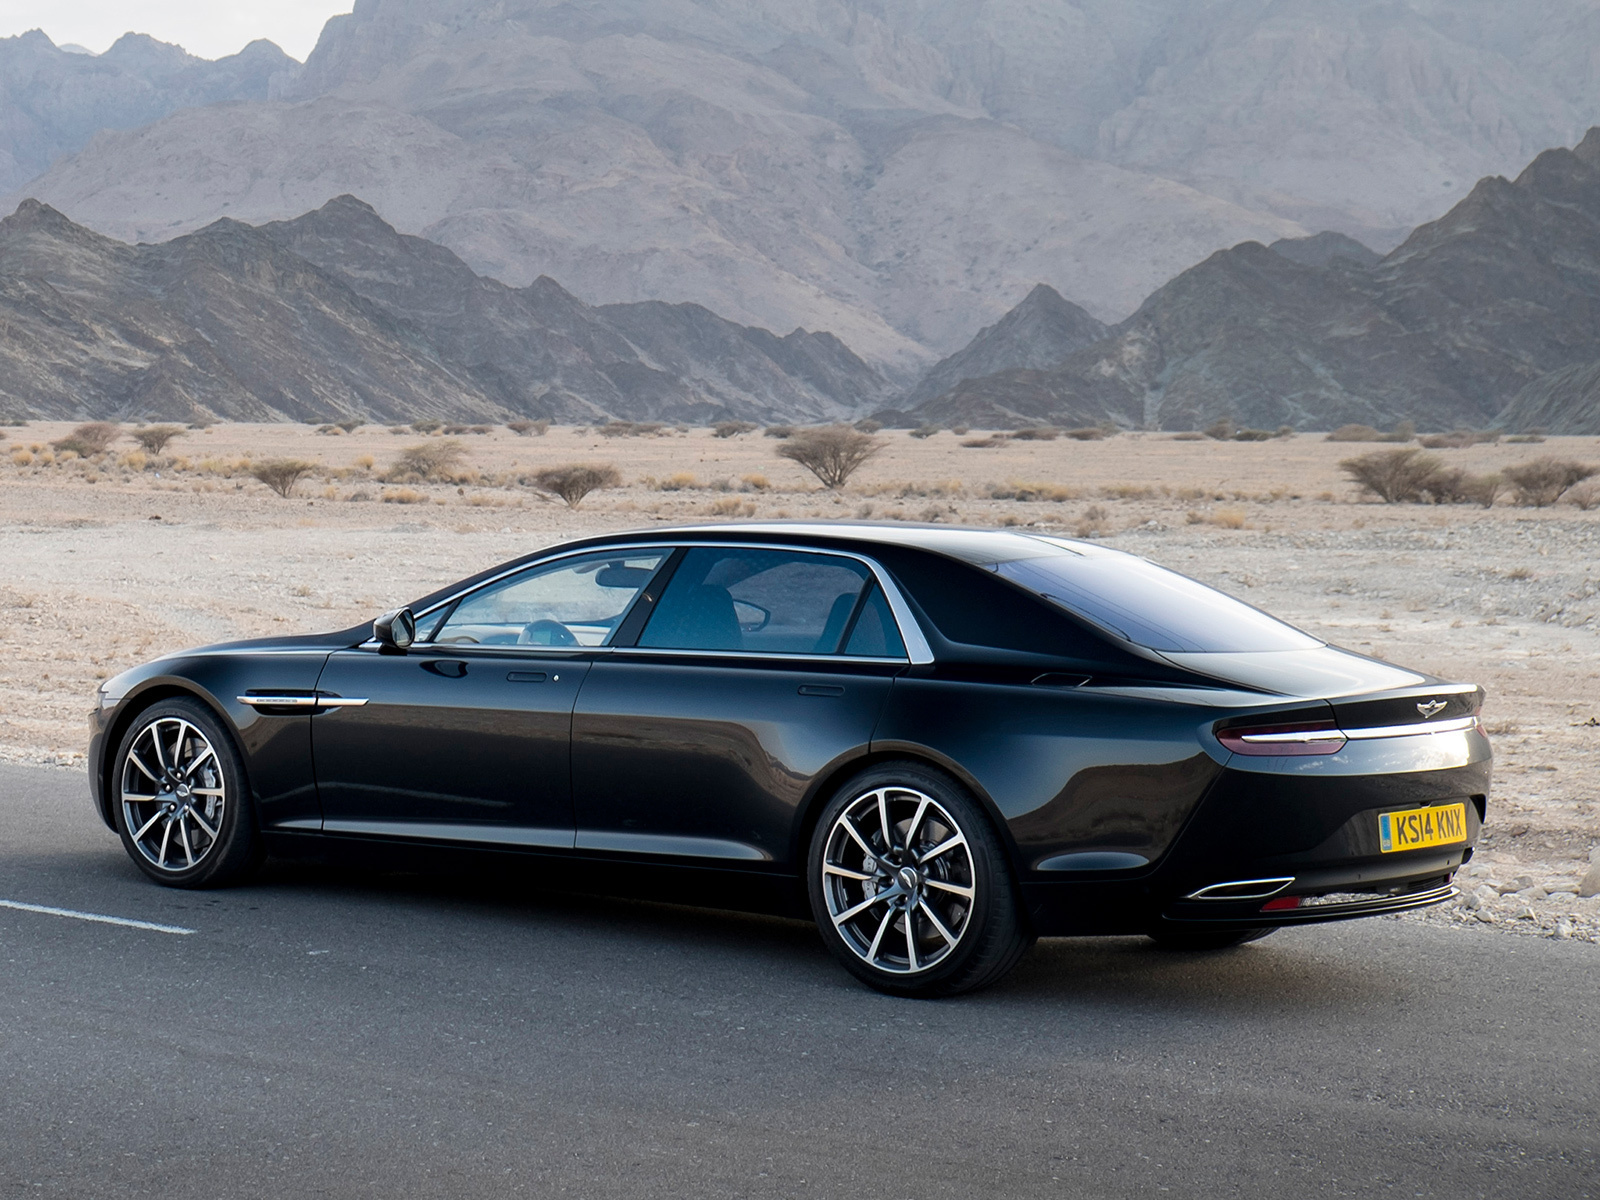 Aston Martin Lagonda Wallpapers Images Photos Pictures ...